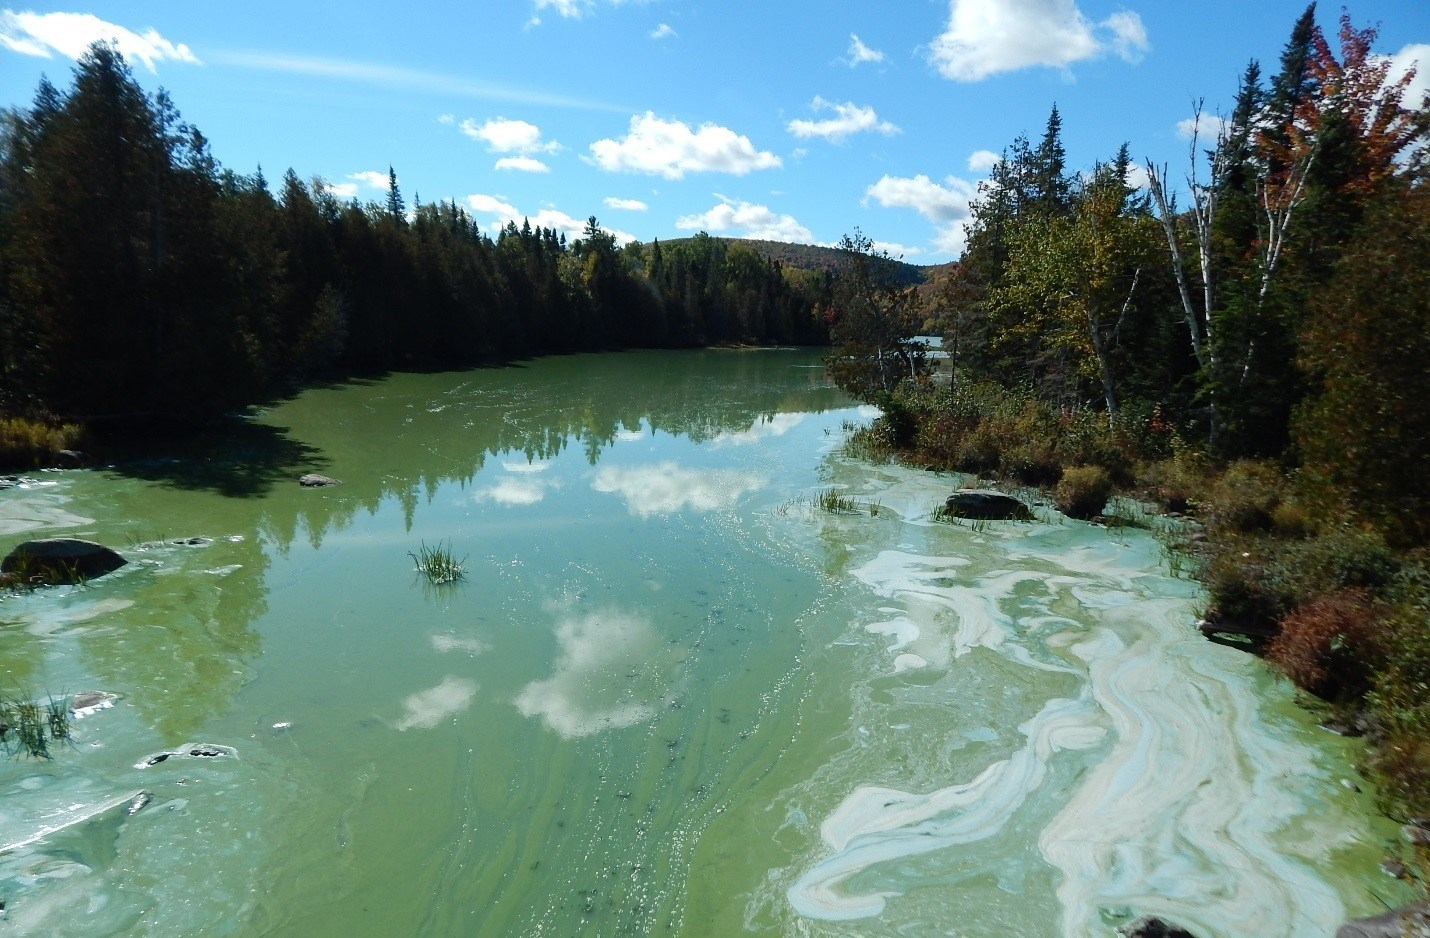 What's that in the water? - Environment and Local Government